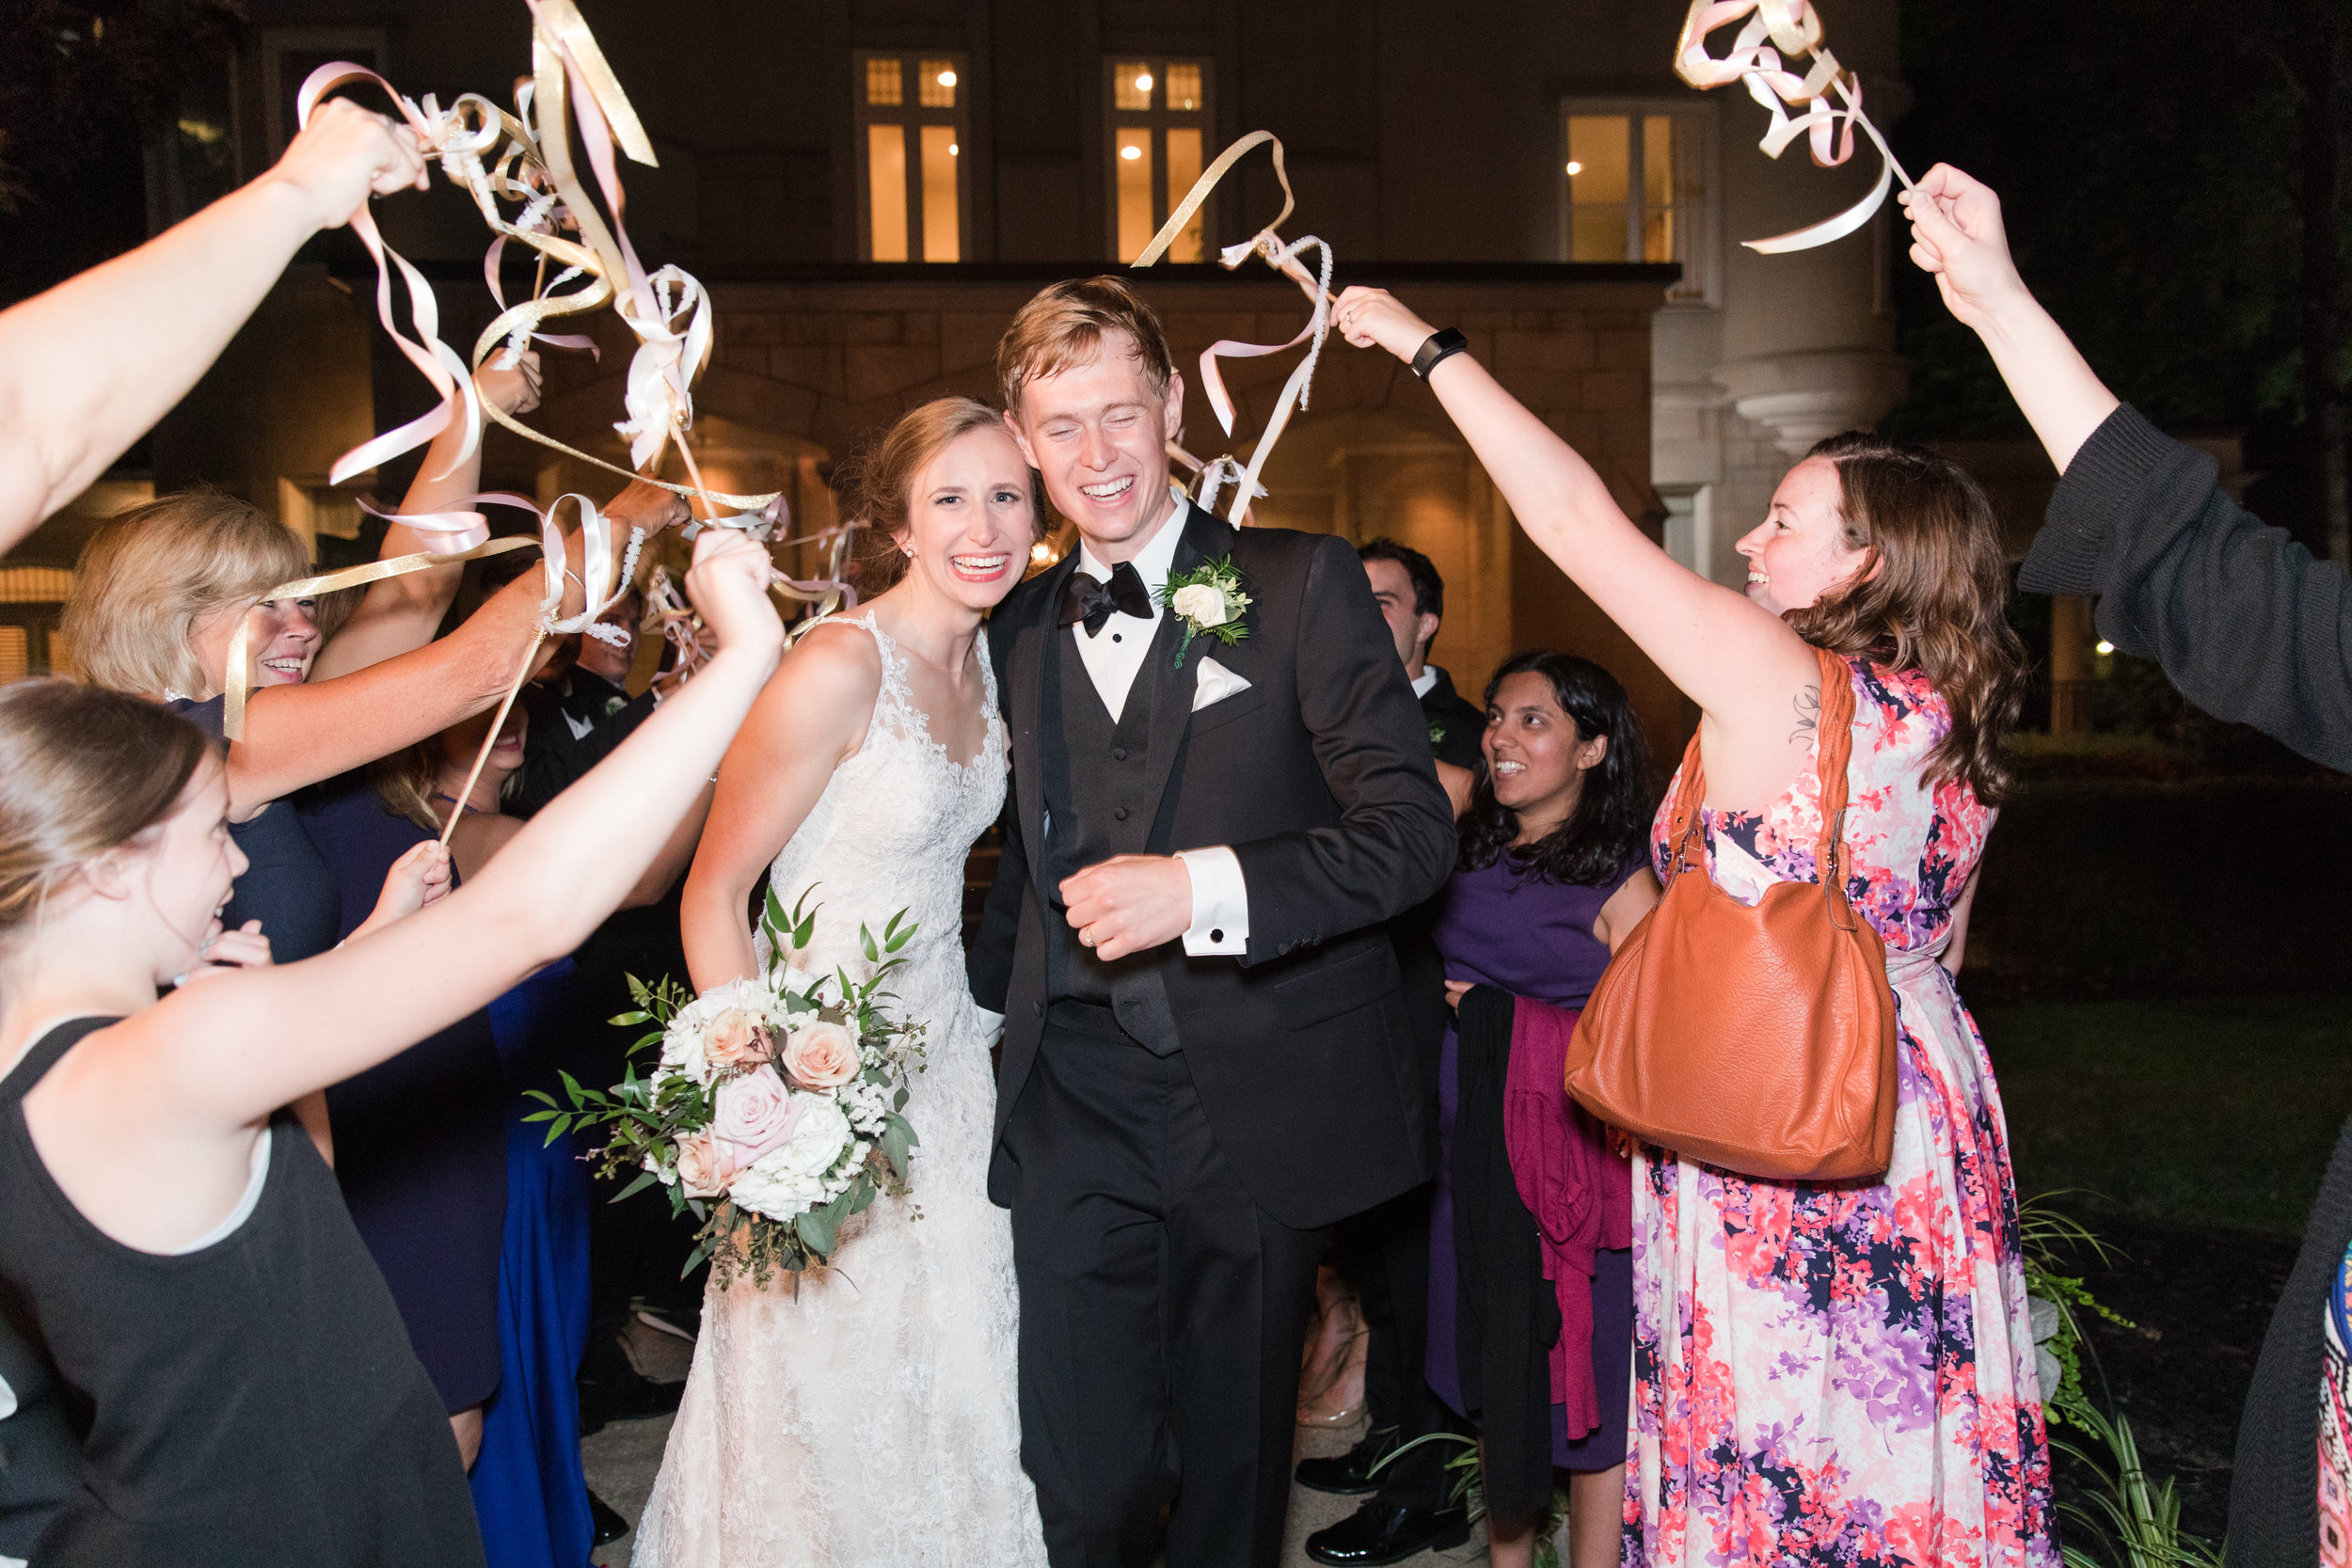 Photo of a ribbon-wand wedding send off by    Abby Breaux Photography   .